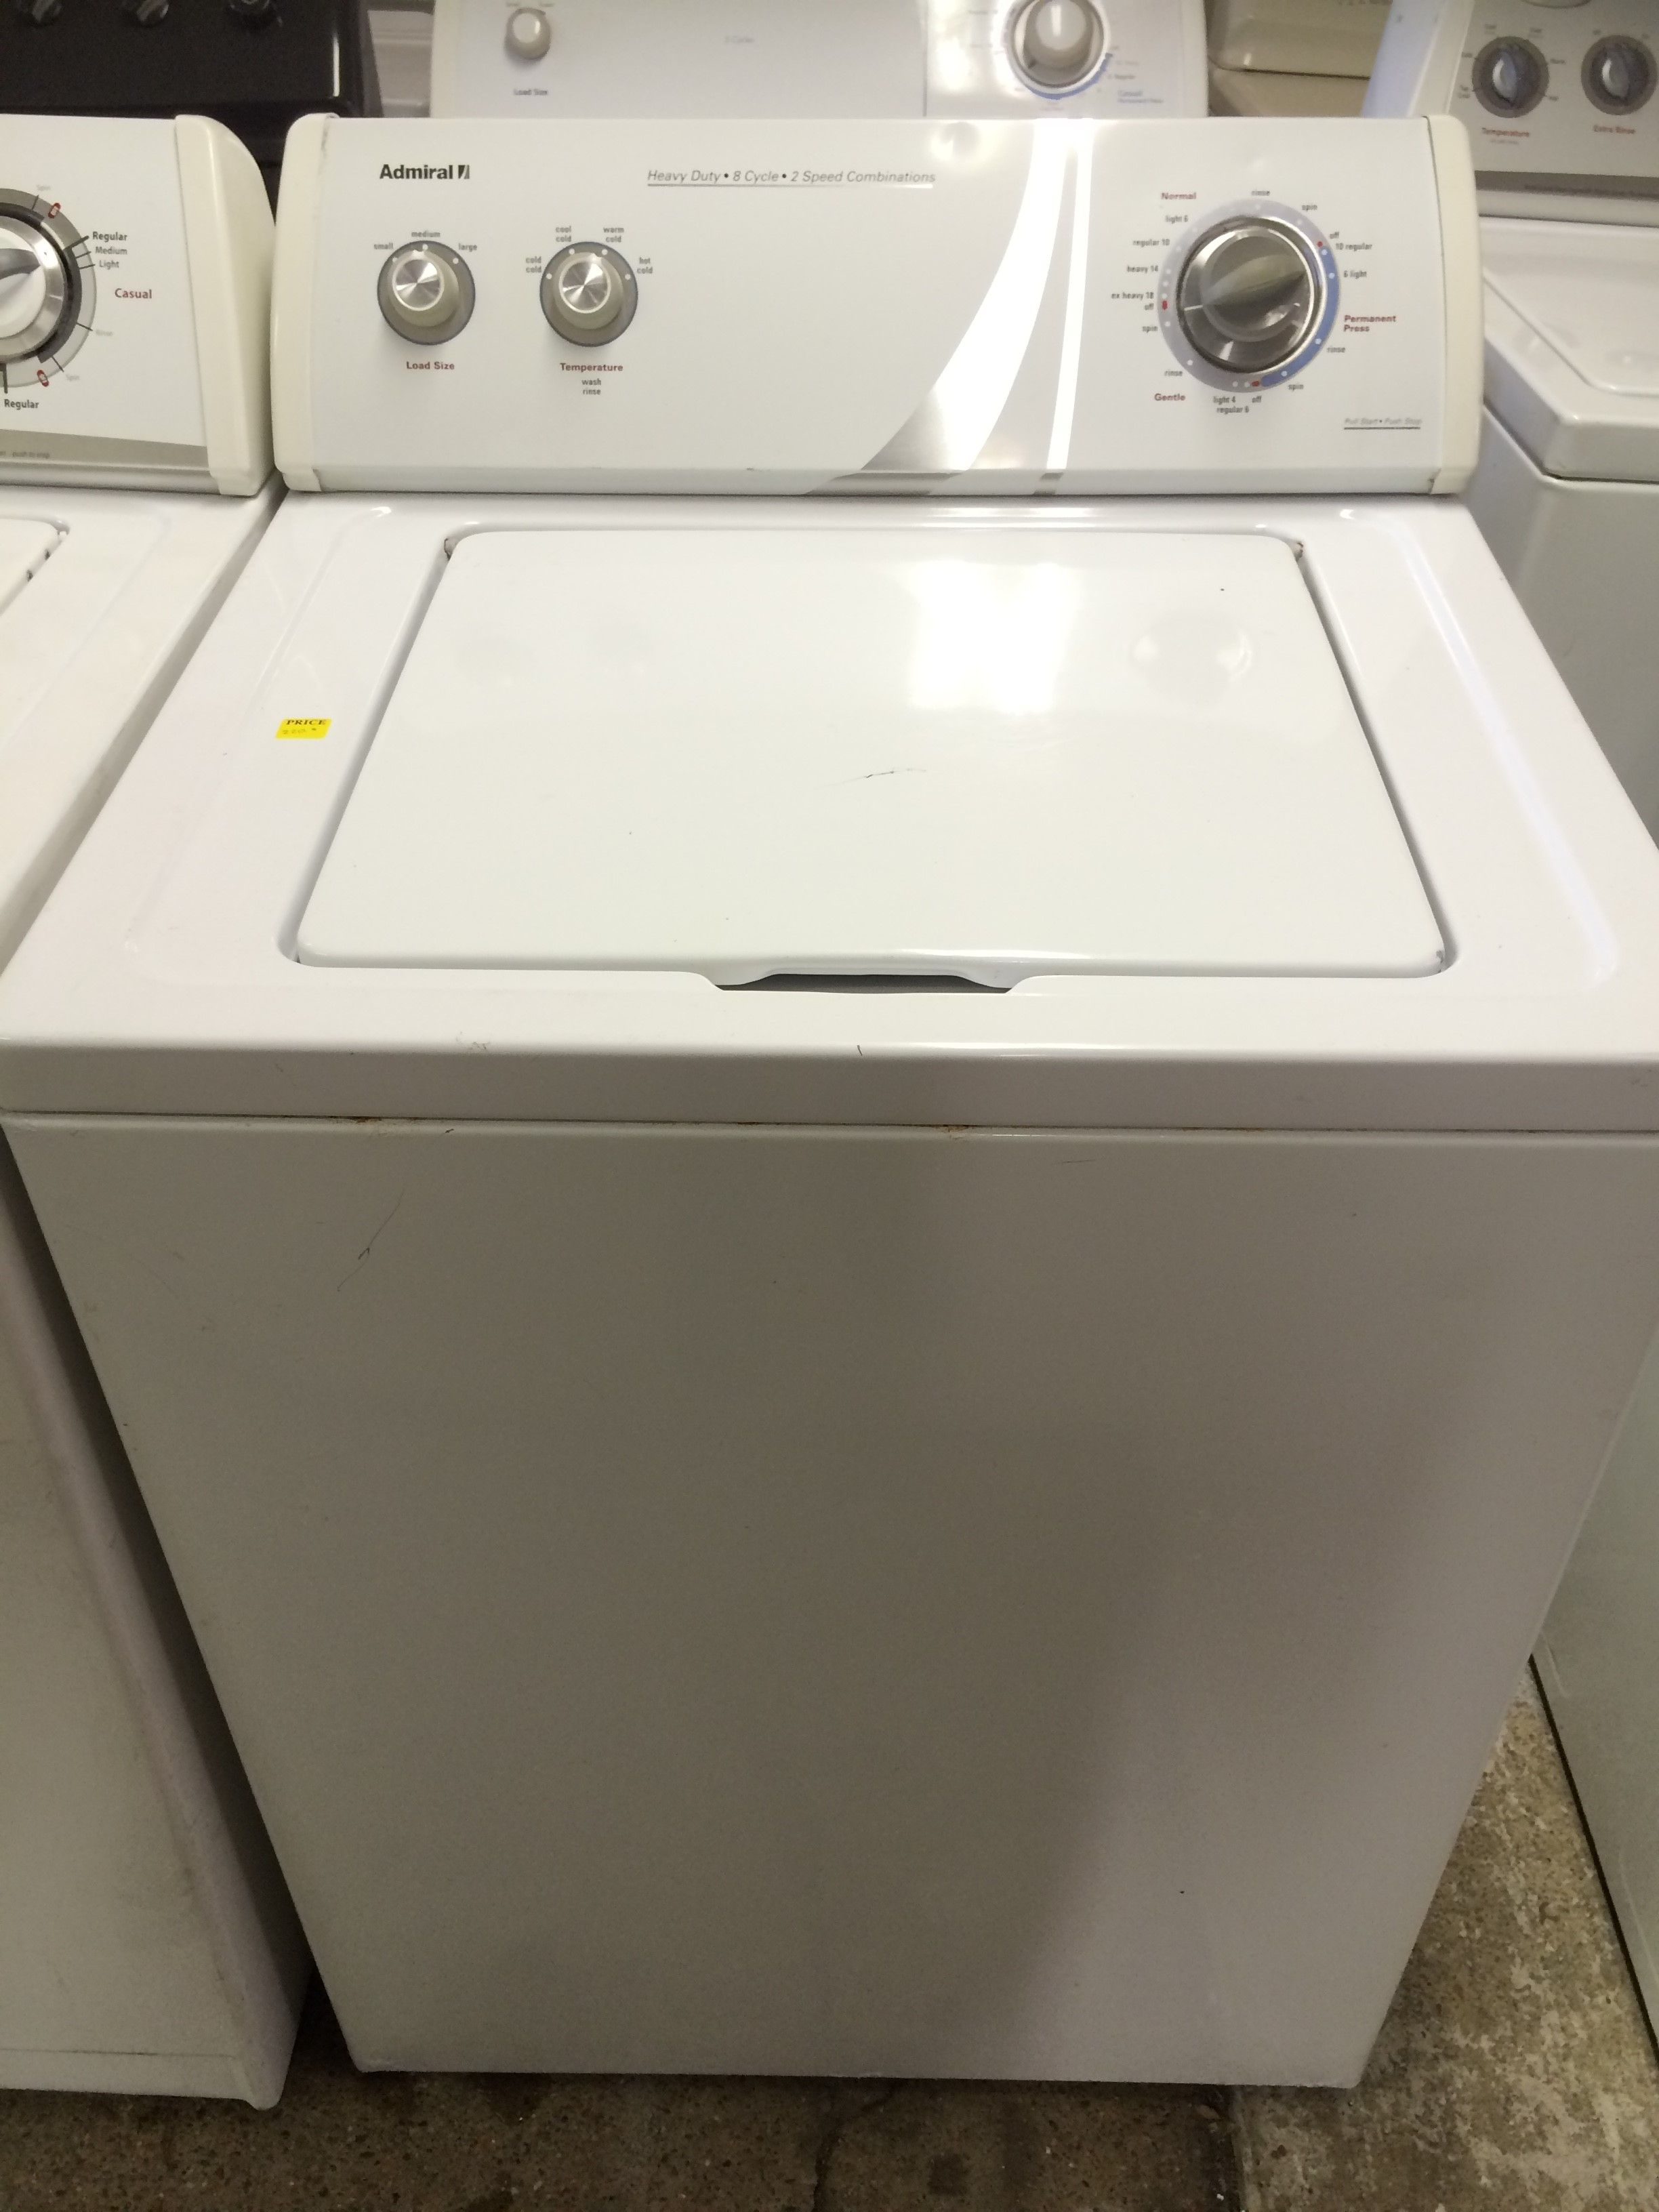 Admiral Washer In White 220 Houston Deals Usedappliances Washer Laundryroom Washer Washers Dryers Home Appliances